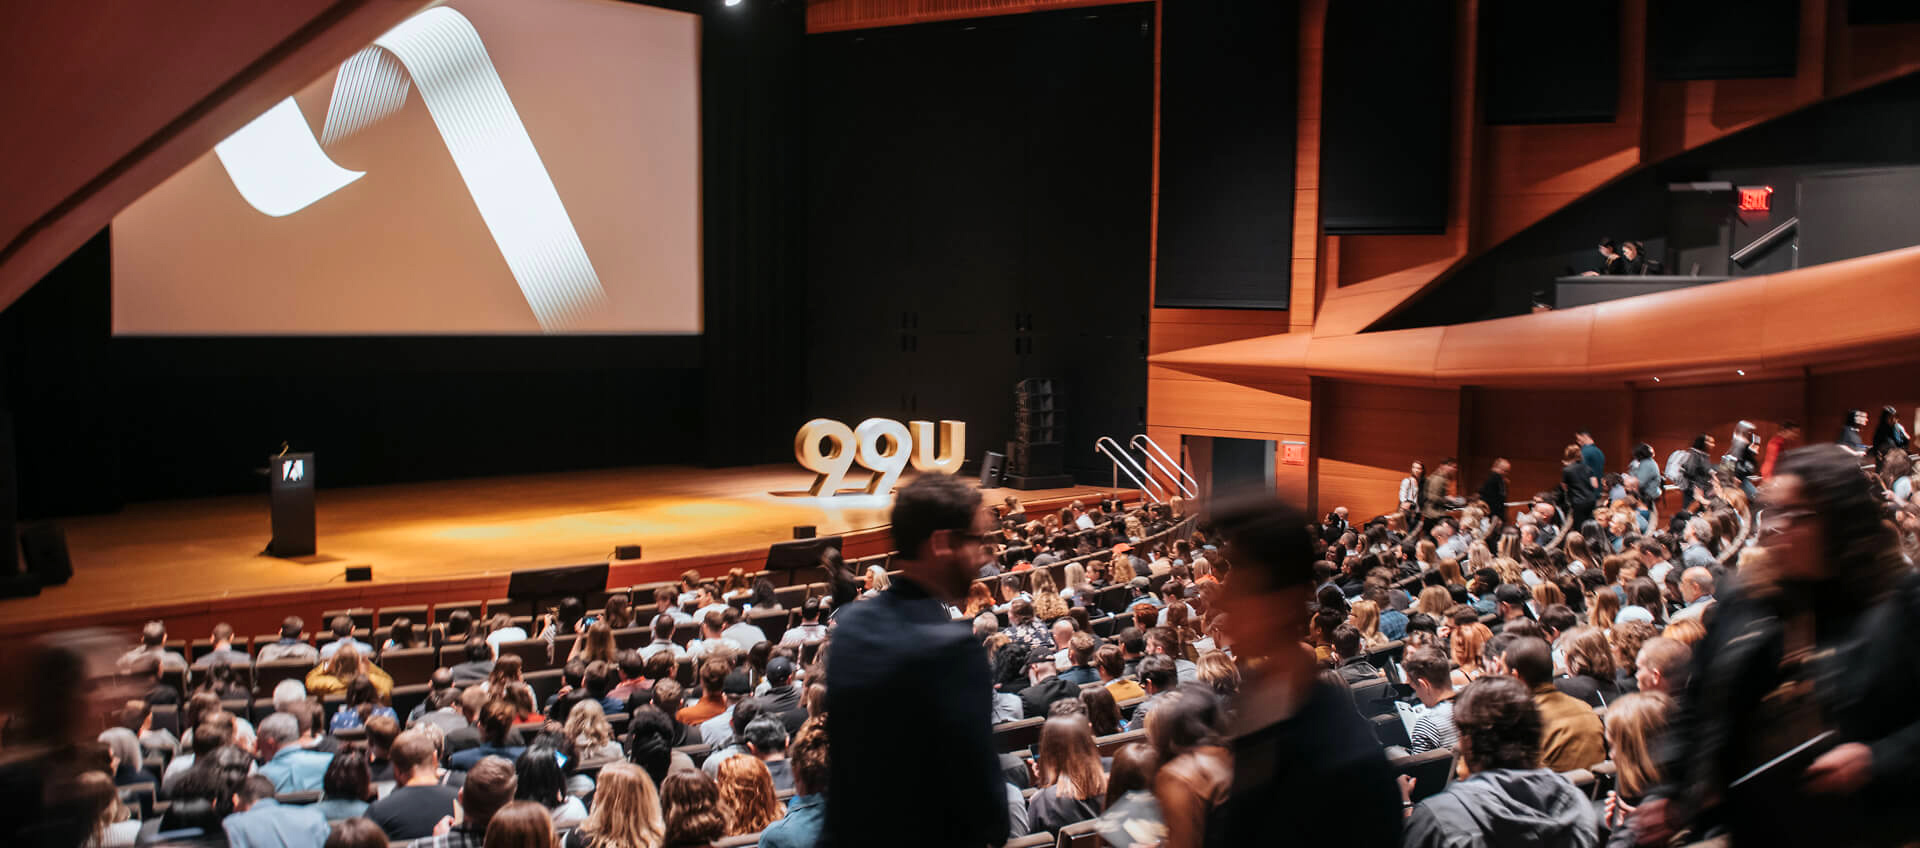 99U is one of the best design conferences